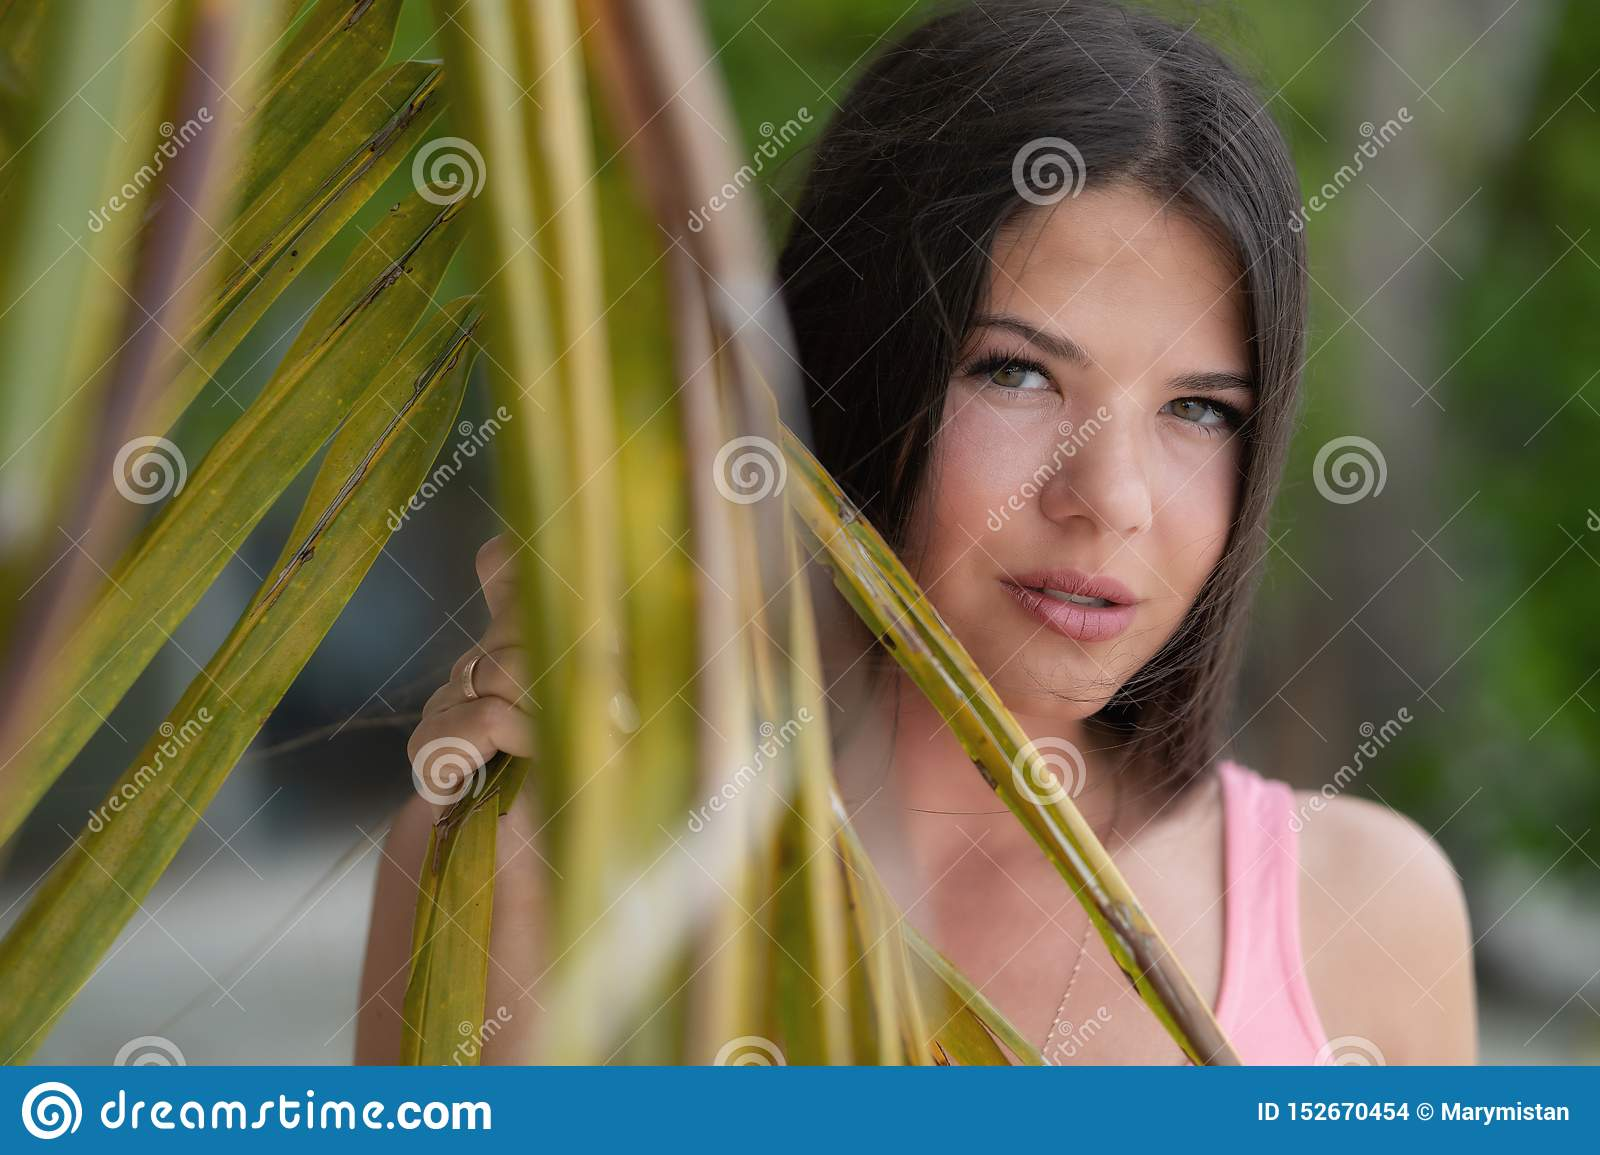 Young beautiful girl looks through a large leaf of a palm tree